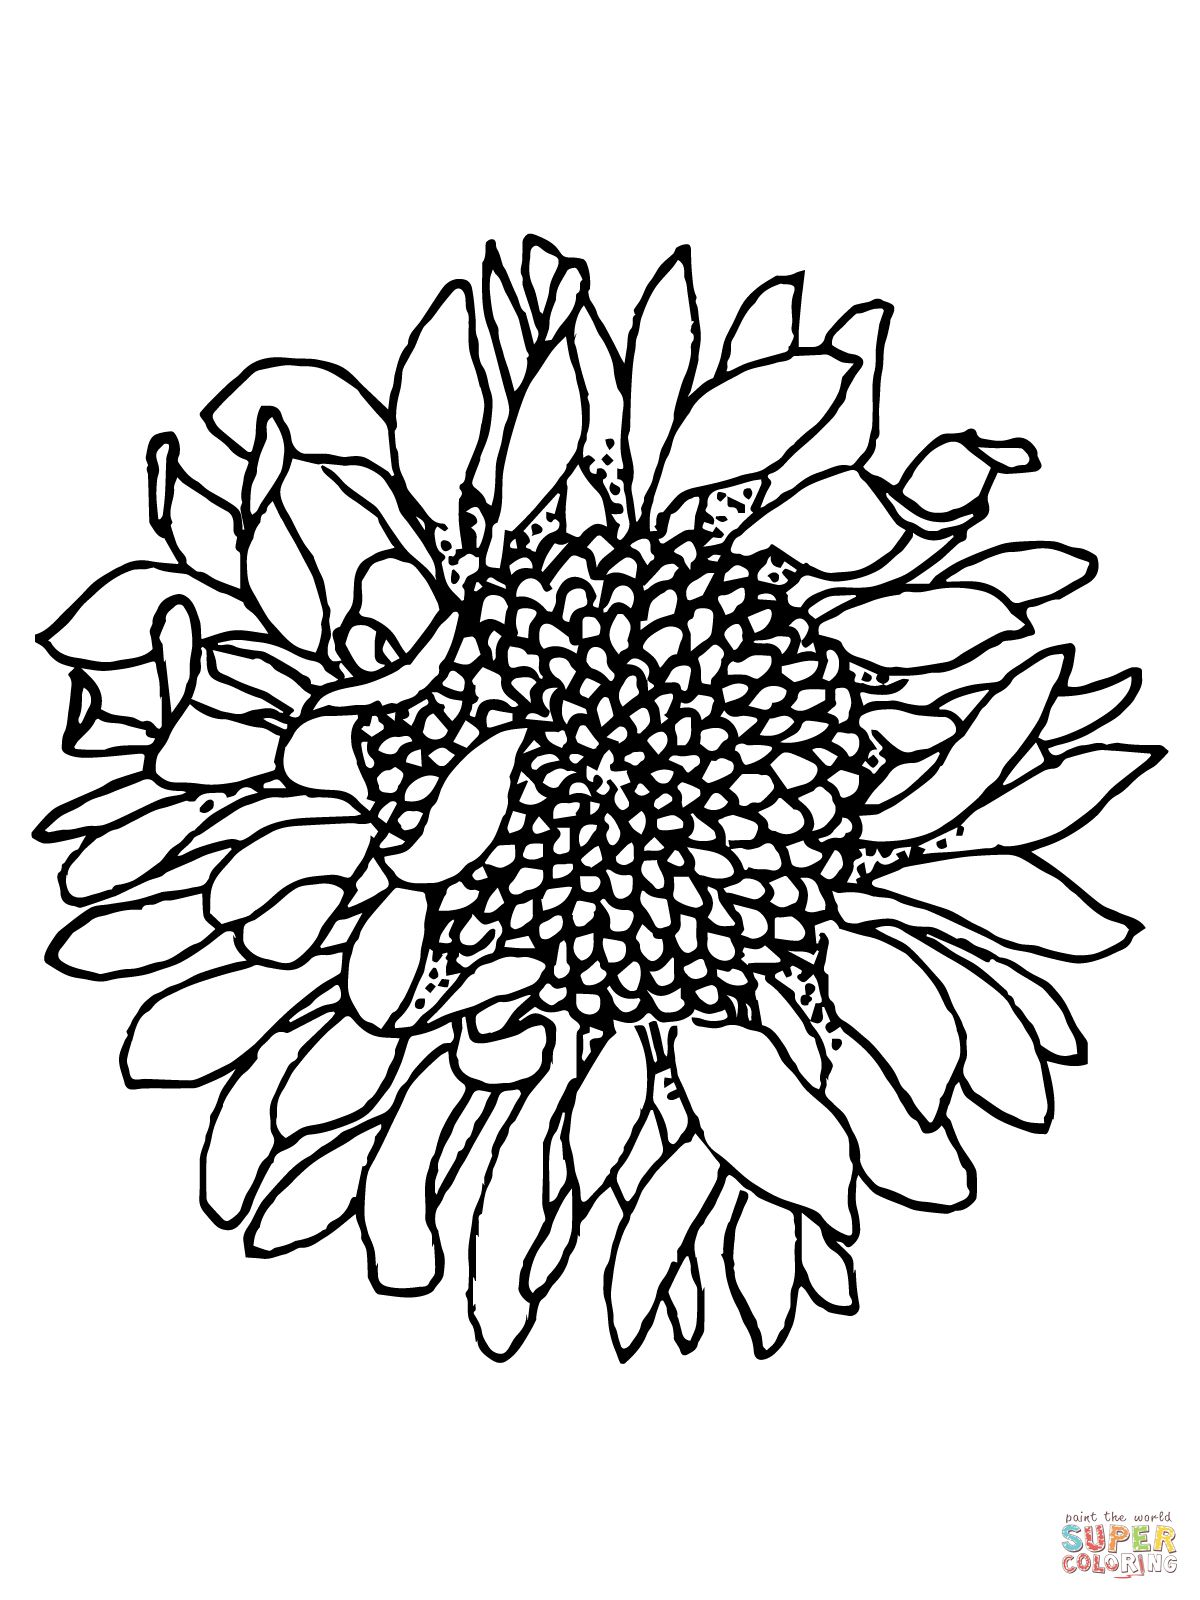 Head of Sunflower coloring page | SuperColoring.com | drawing ...